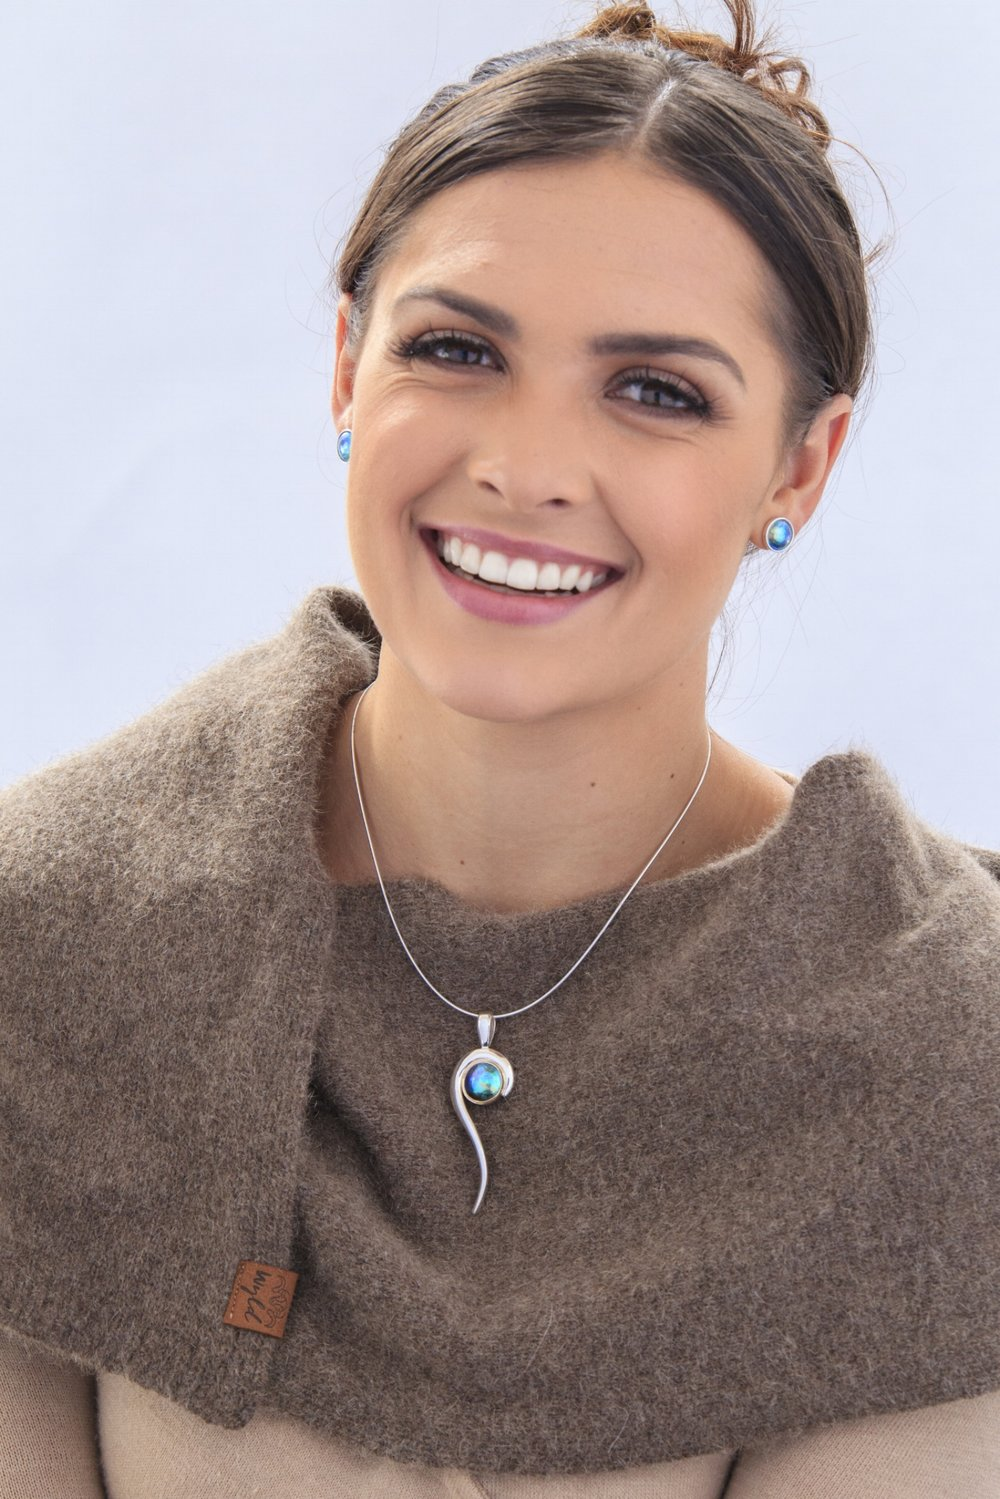 Karla de Beer, Miss World New Zealand wearing Eyris Blue Pearls and Wyld scarf